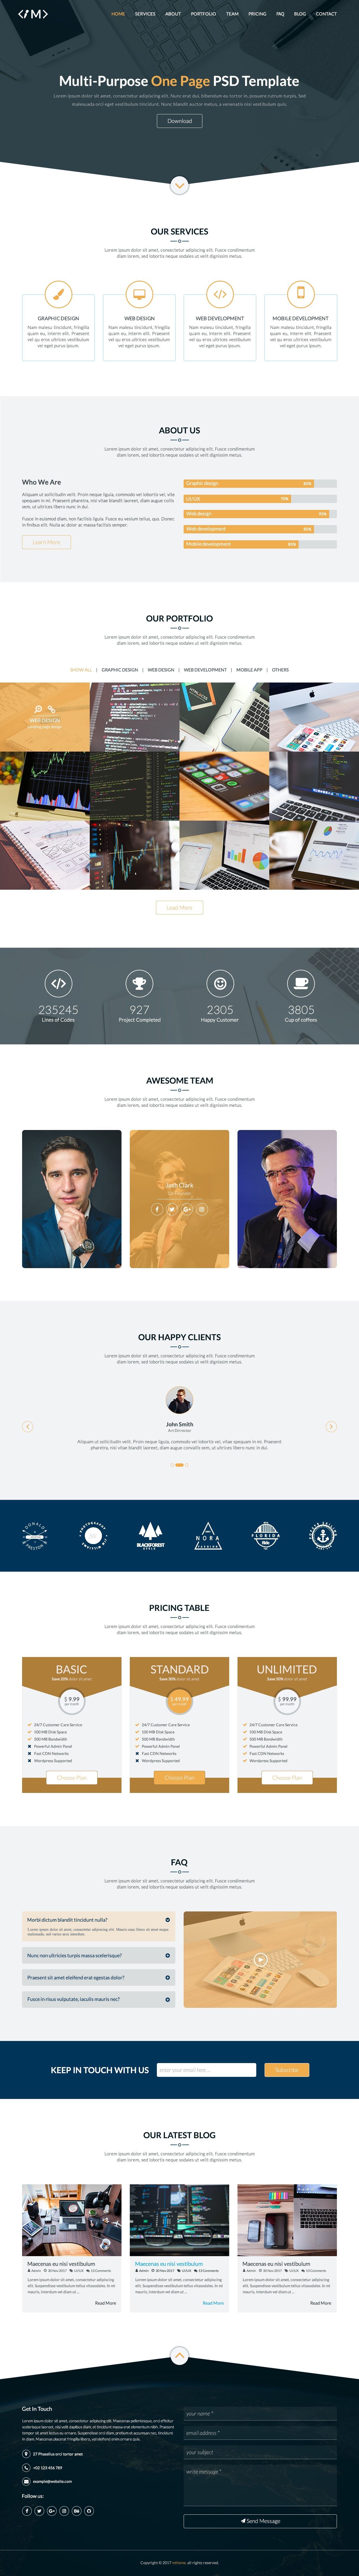 MTheme - Multi-Purpose One Page PSD Template Screenshot 15